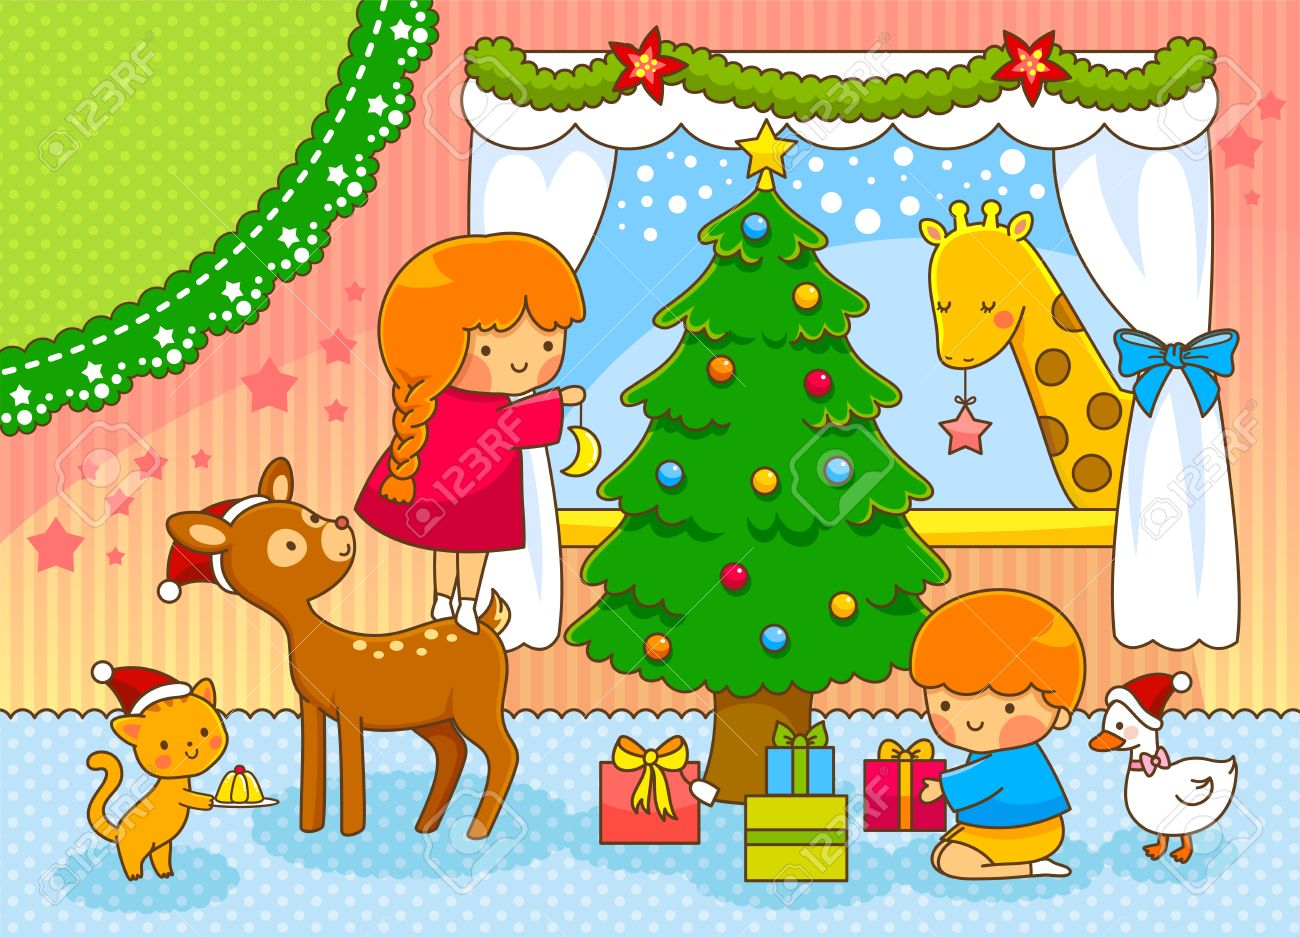 Christmas Card With Cute Cartoons And Space For Text Royalty Free ...